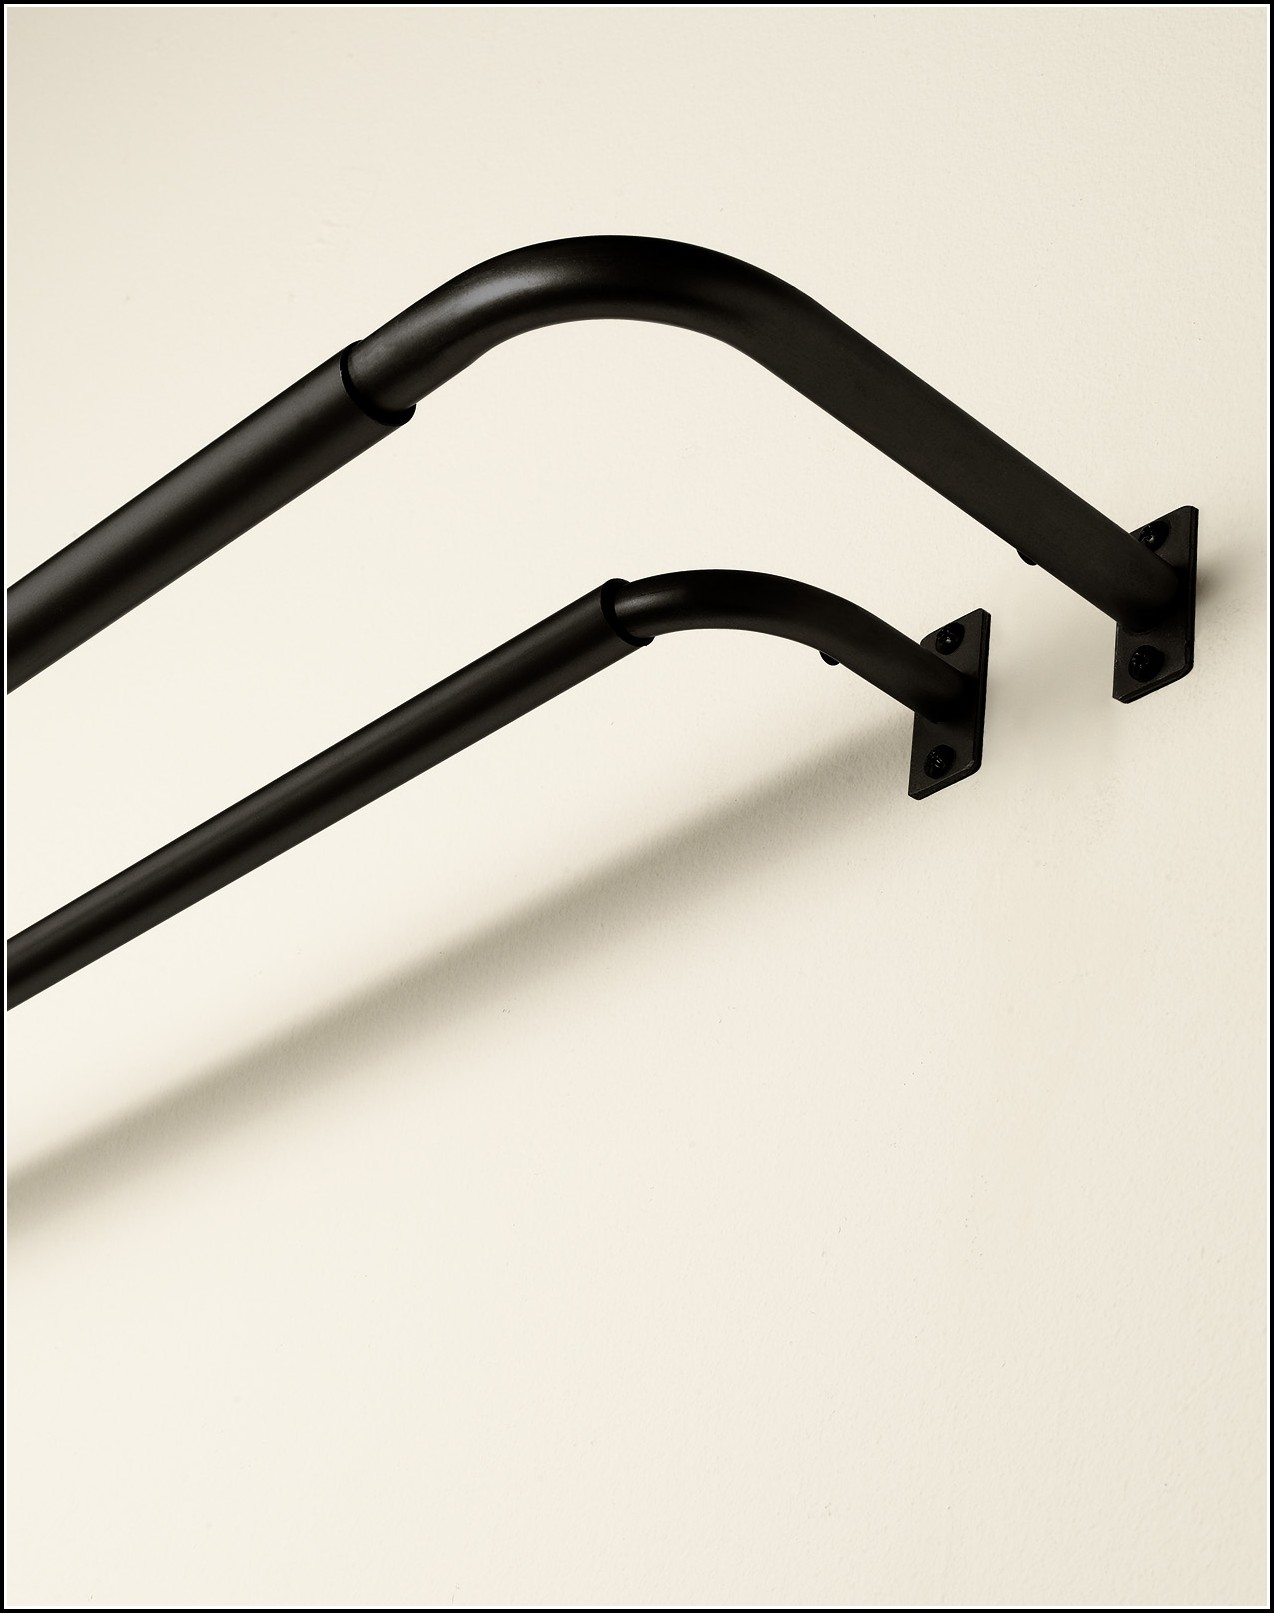 Tension Rod Ikea Spring Tension Curtain Rod Ikea - Curtains : Home Design